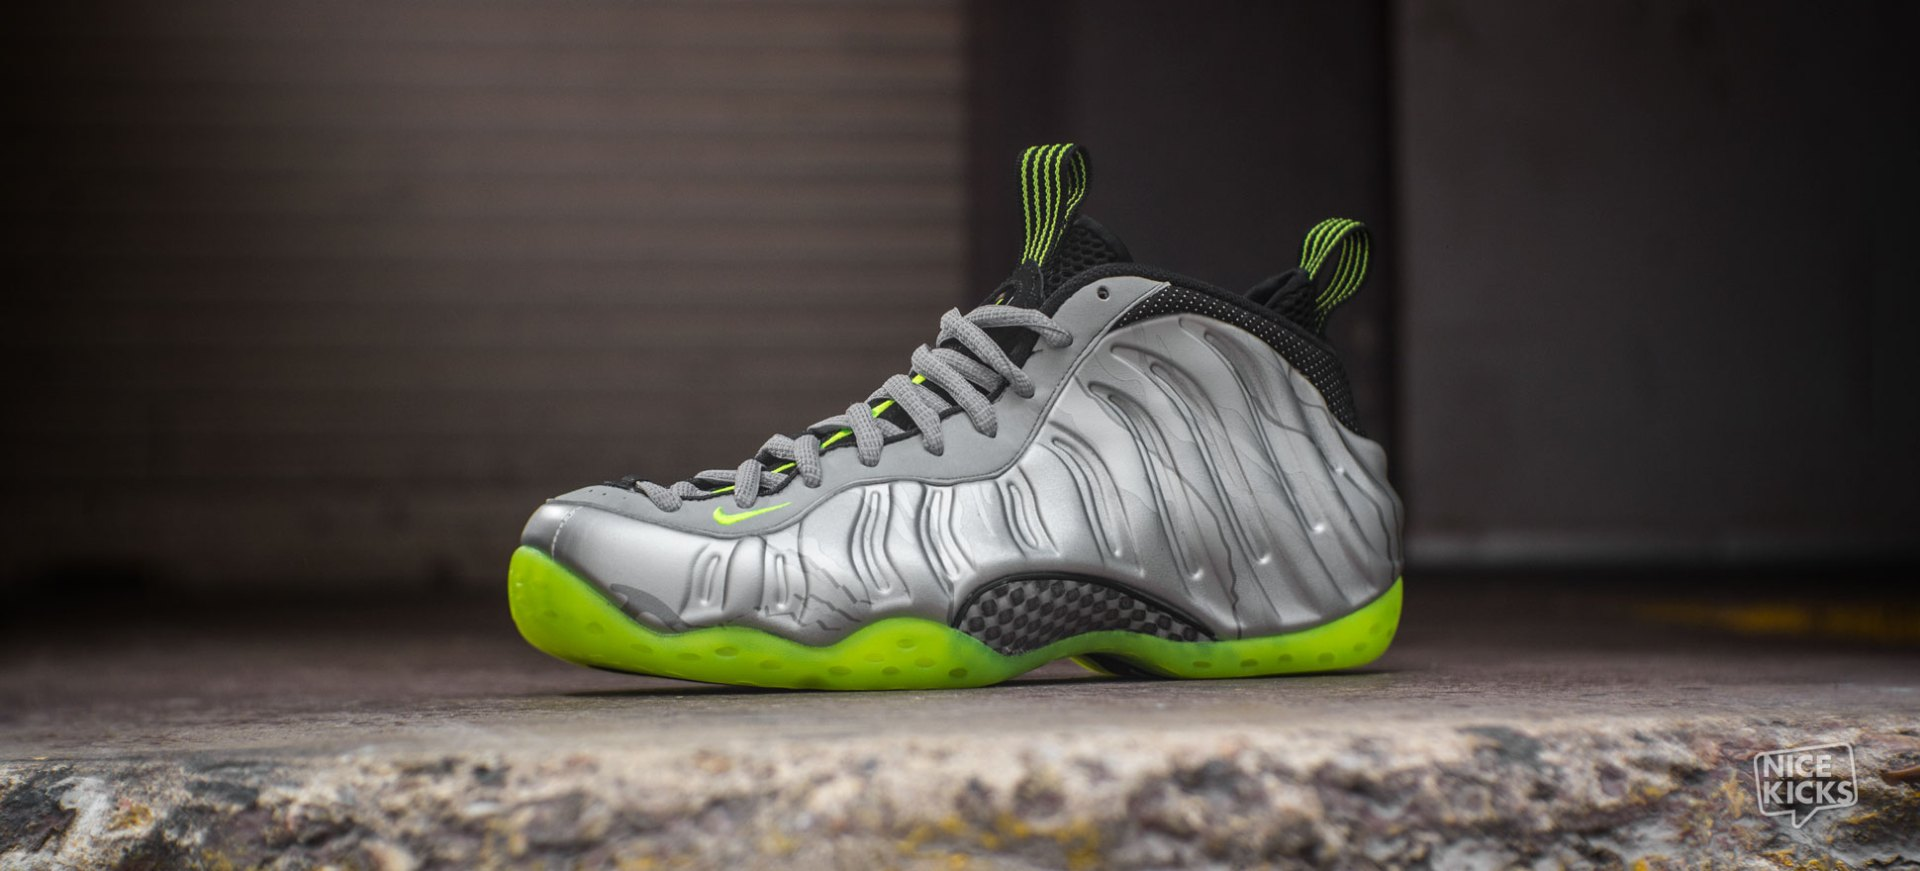 pretty nice 15ef0 6de35 Nike Air Foamposite One Metallic Silver/Volt Detailed Images ...